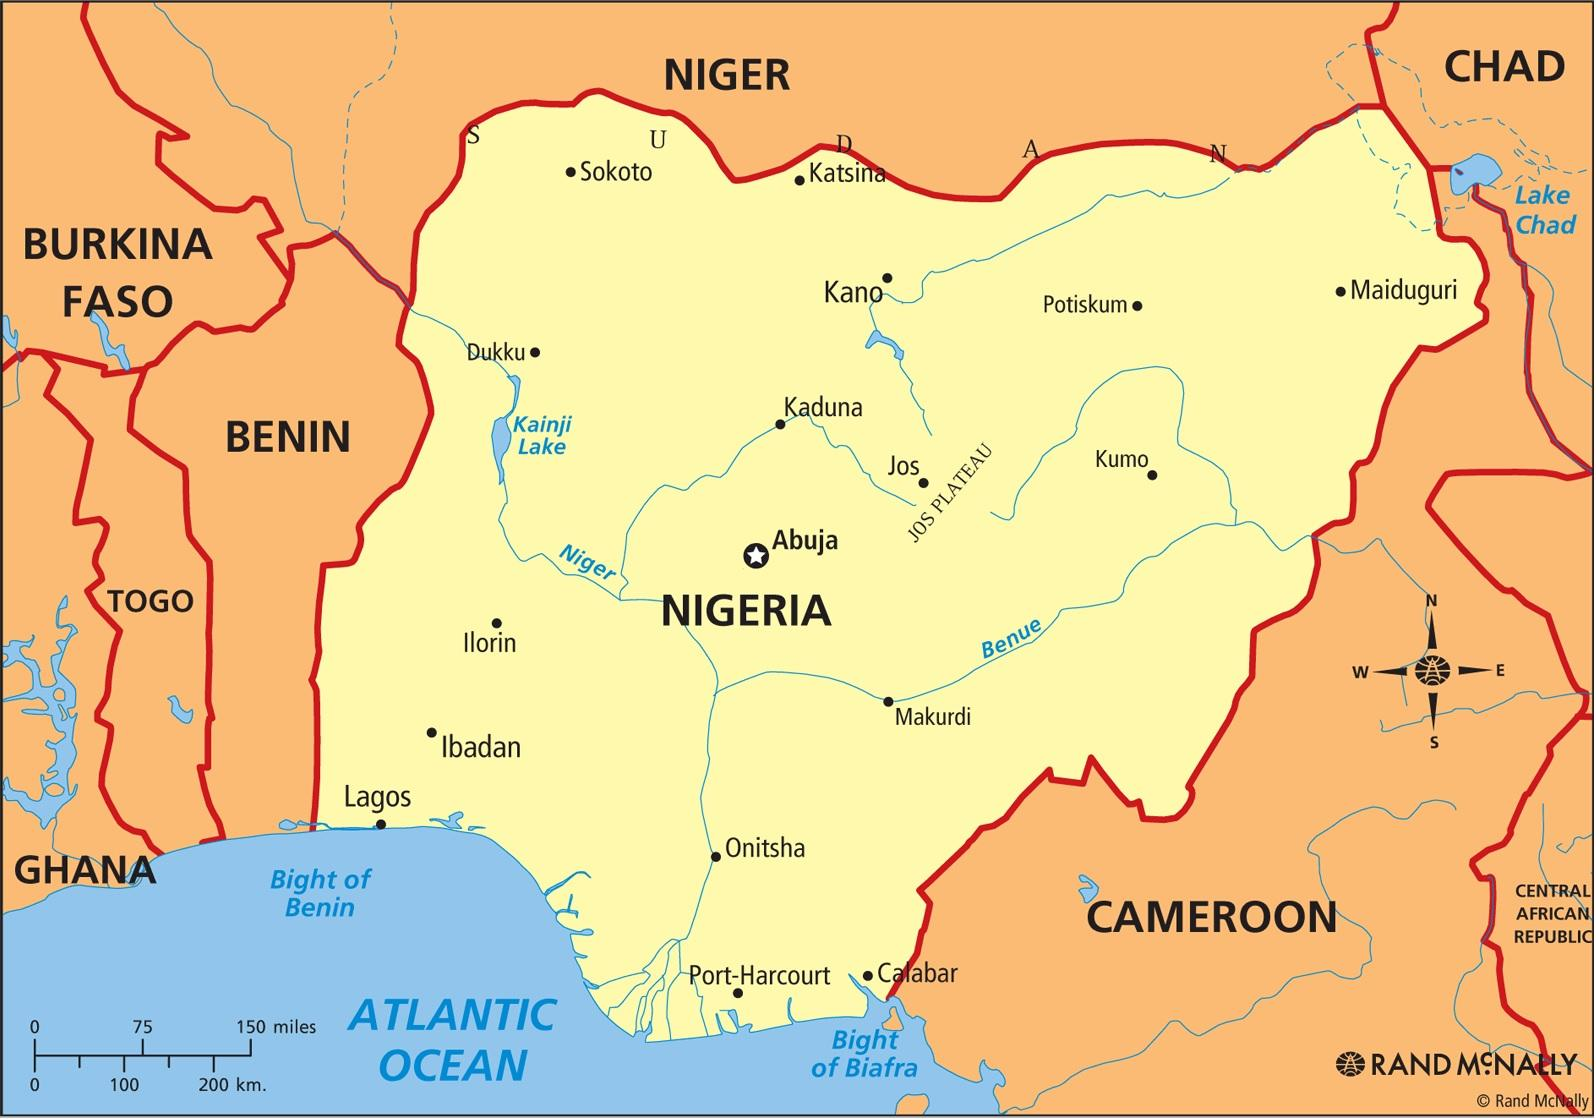 Benue River Africa Map Map of nigeria showing river niger and river benue   Map of